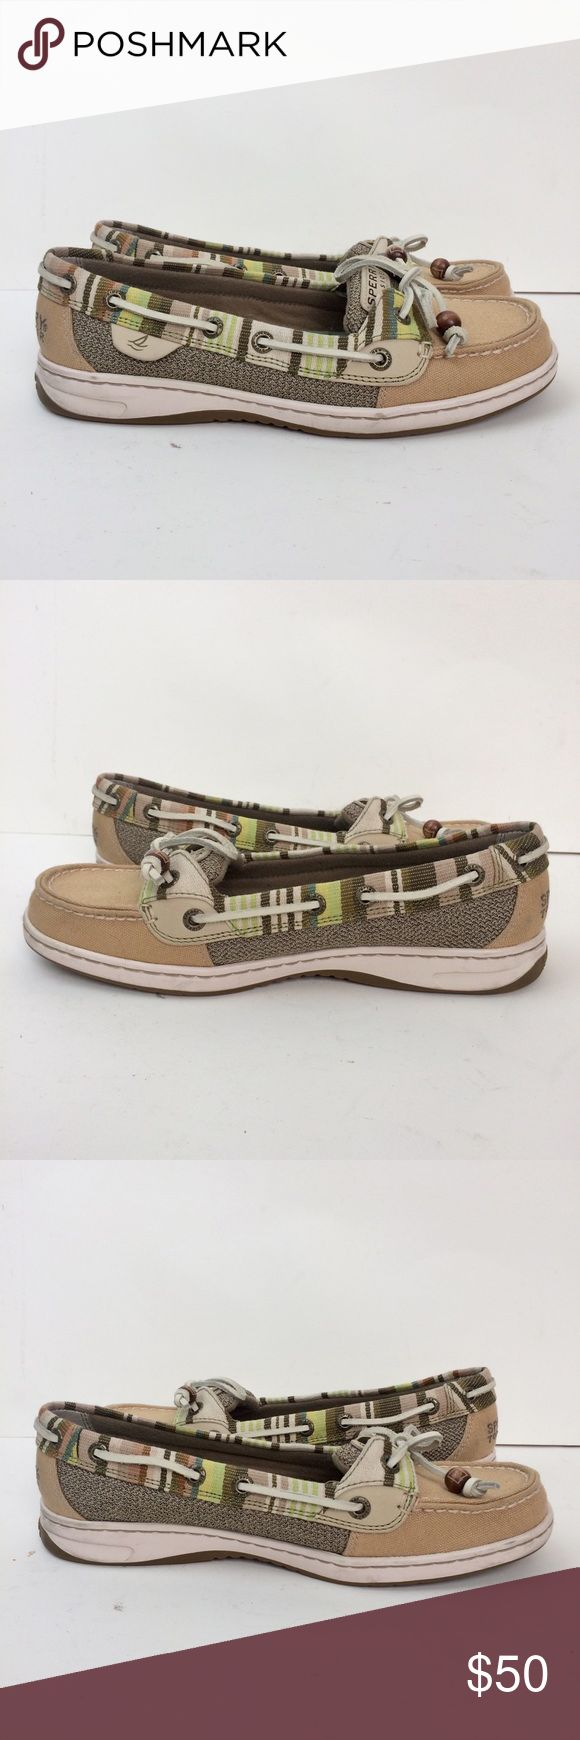 Sperry Top-Sider Angelfish Boat Shoe Size 7.5M SPERRY TOP-SIDER ANGELFISH BOAT SHOE  WOMEN'S SIZE  COLOR: TAN/GRAY/GREEN/WHITE  MINIMAL WEAR  DETAILS:  Stain and water resistant fabric upper in a boat shoe style with a round toe Moc toe with raised top stitching Single lace up detail 360 degree lacing system Breathable fabric panels Slip on entry Smooth lining, cushioning insole with molded EVA cushion Non-marking outsole with Adaptive Wave-Siping™ Sperry Top-Sider Shoes Flats & Loafers